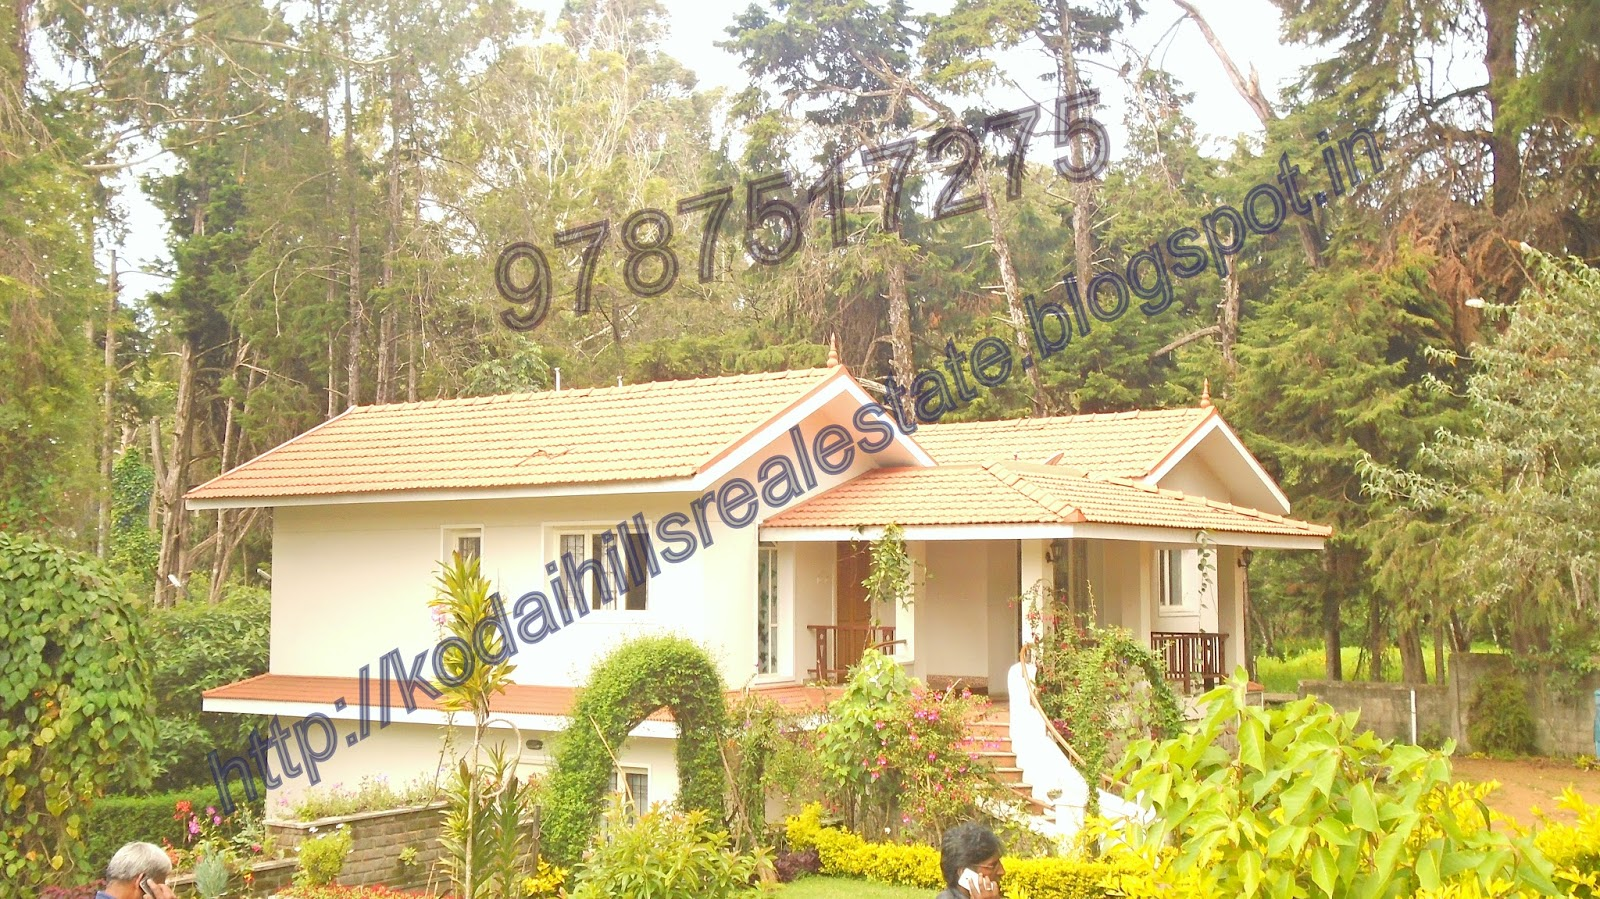 Kodai hills real estate a beautiful bunglow for sale in Beautiful real estate pictures